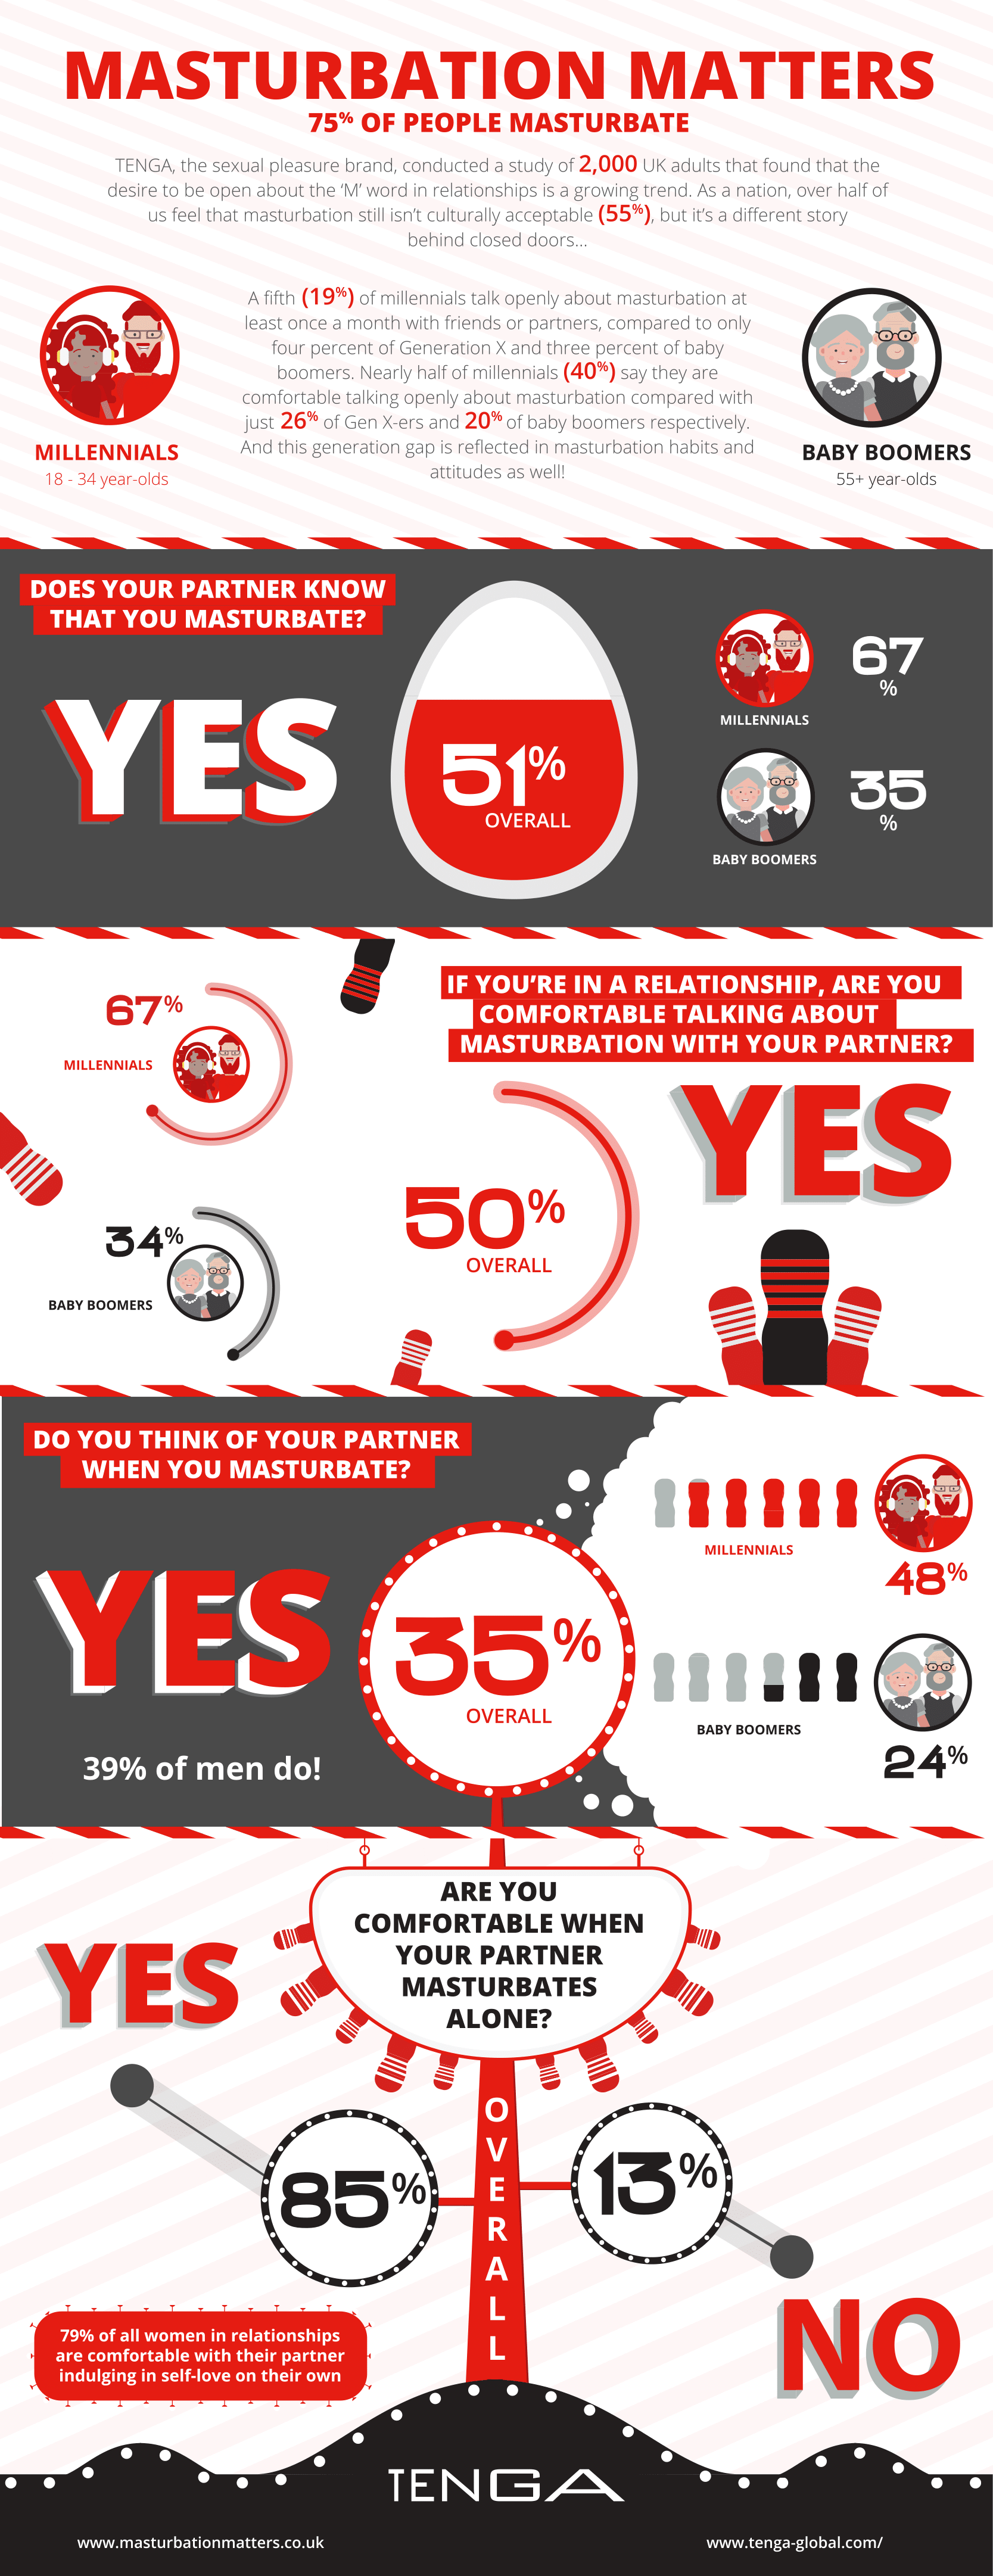 TENGA Survey Shows 85% Of Us Are Happy With Our Partner's masturbation habits